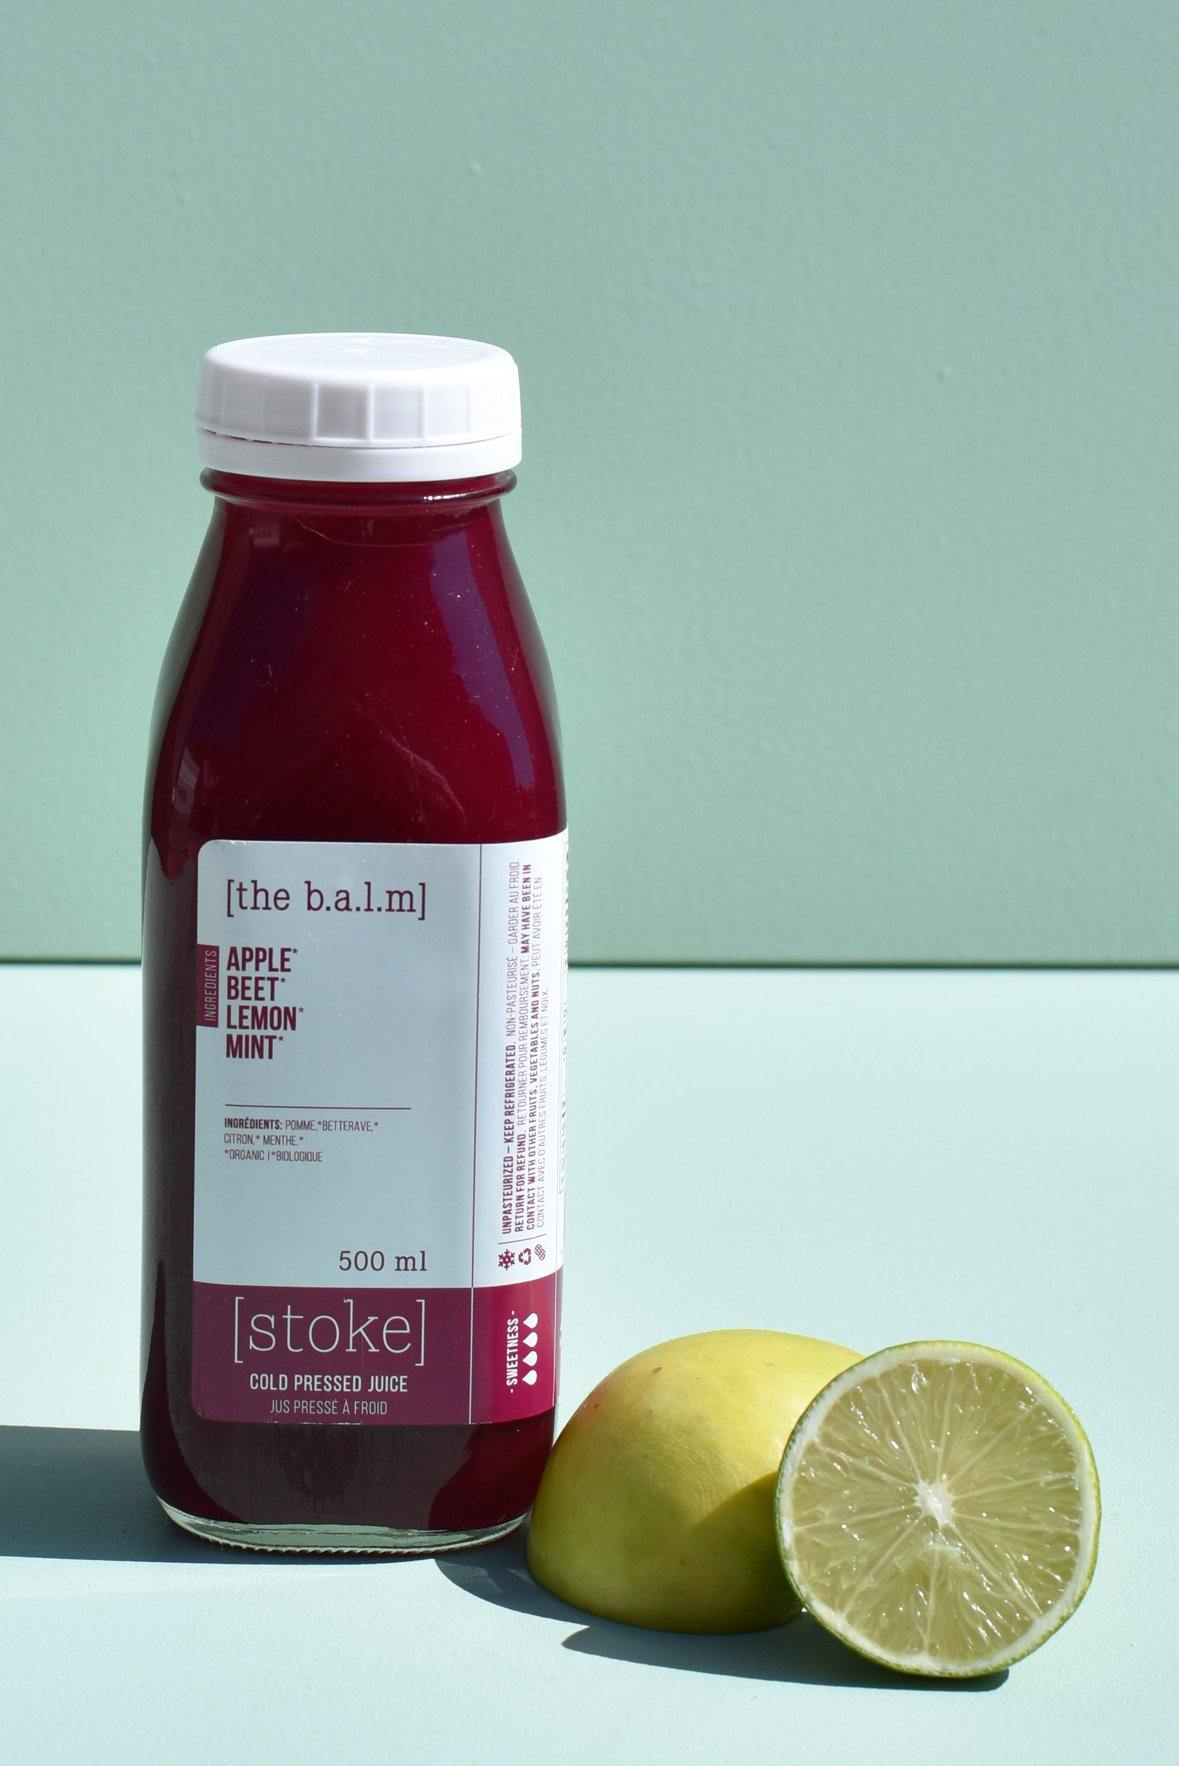 [ the b.a.l.m ] cold pressed juice with beet